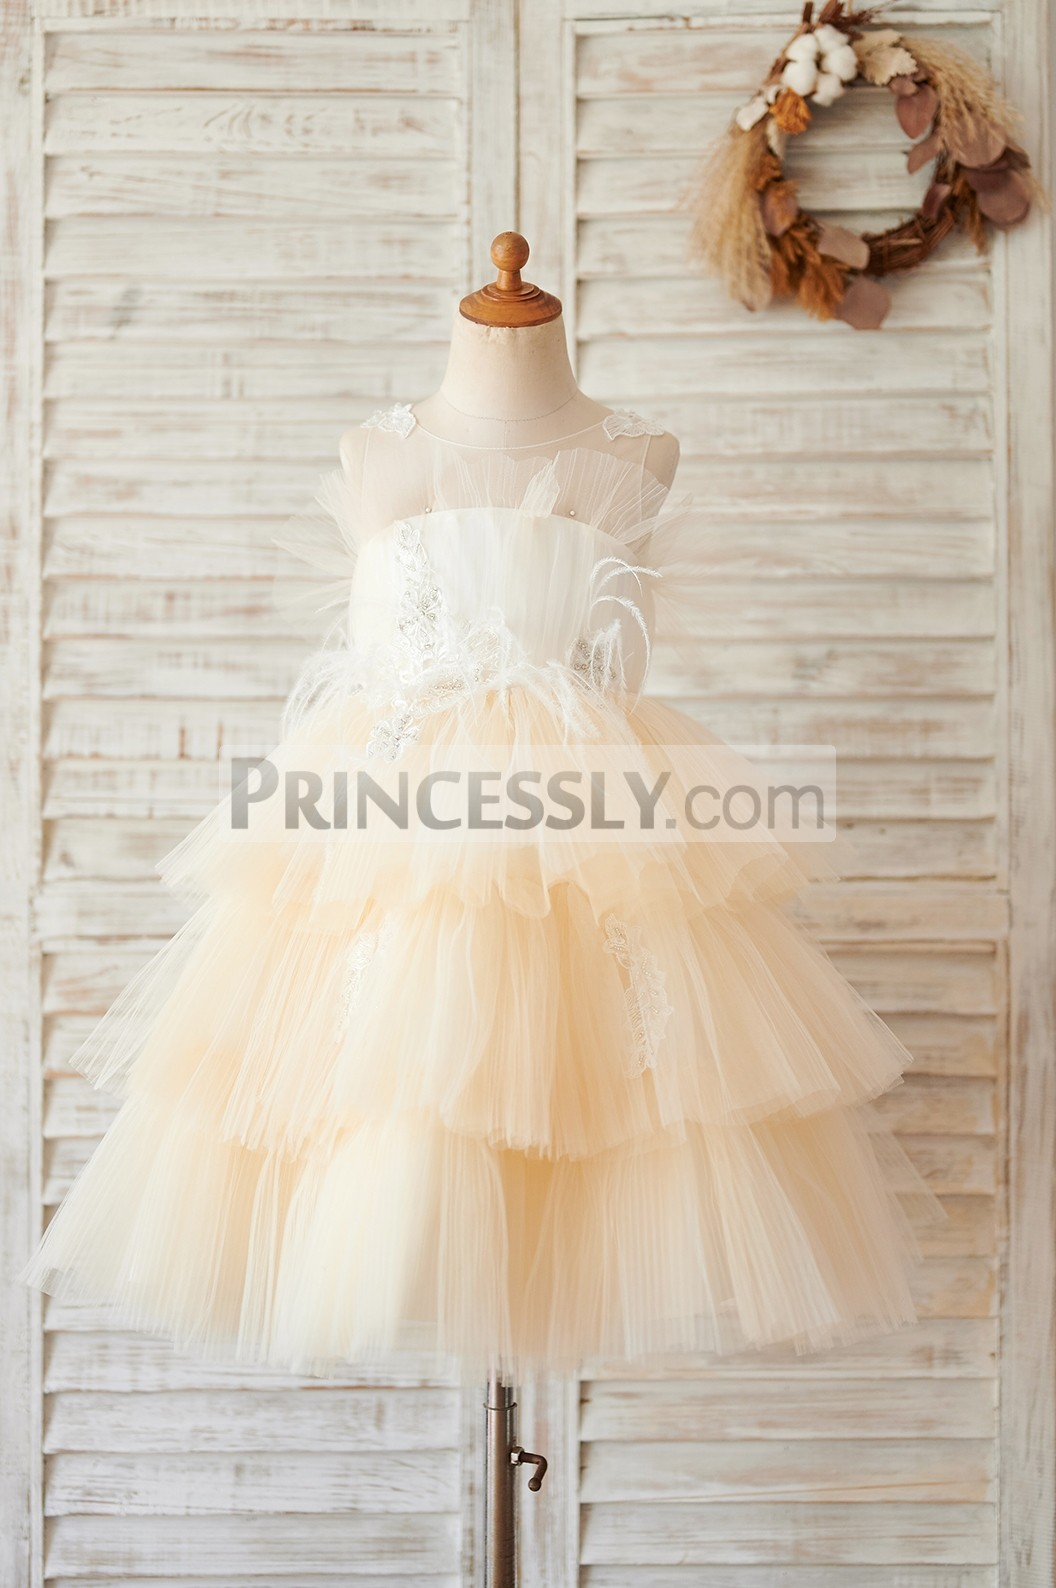 Princessly.com-K1004061-Champagne Cupcake Tulle Beaded Lace Wedding Flower Girl Dress-31